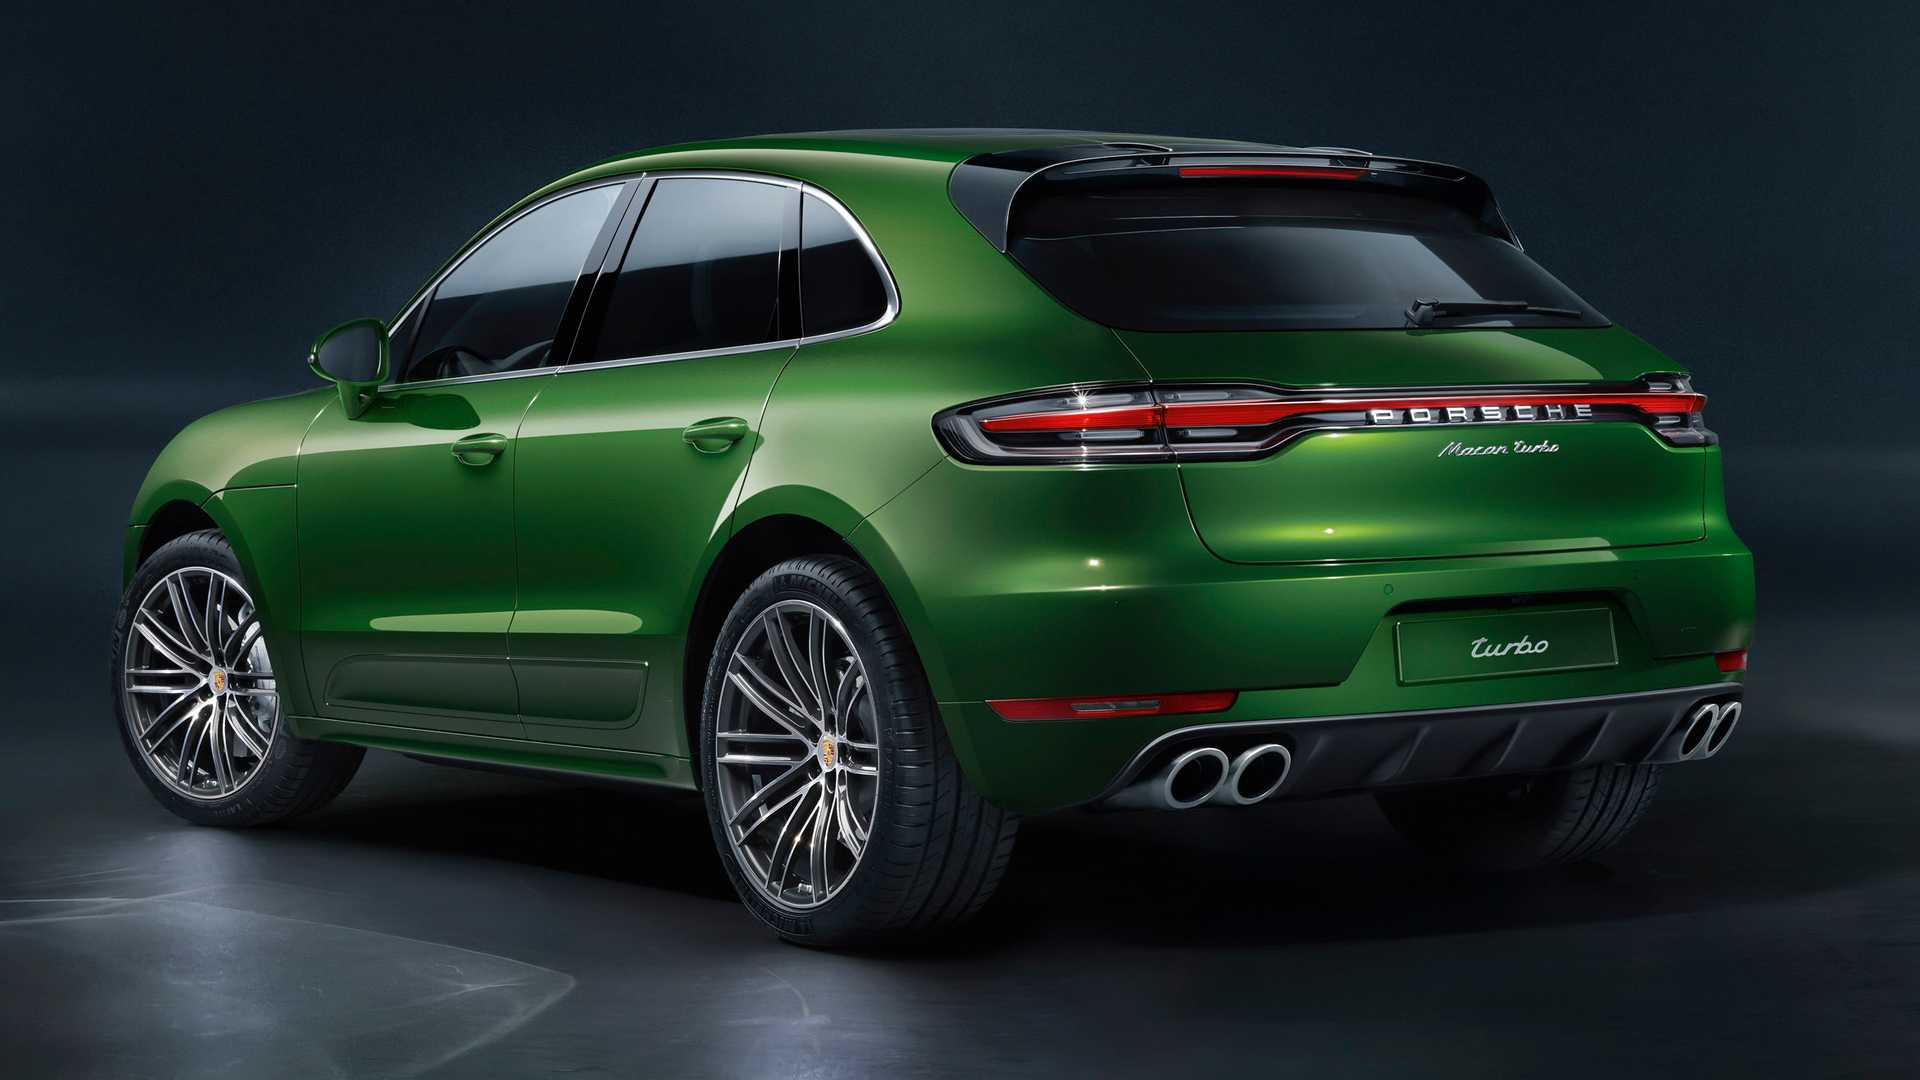 2020-porsche-macan-turbo-1